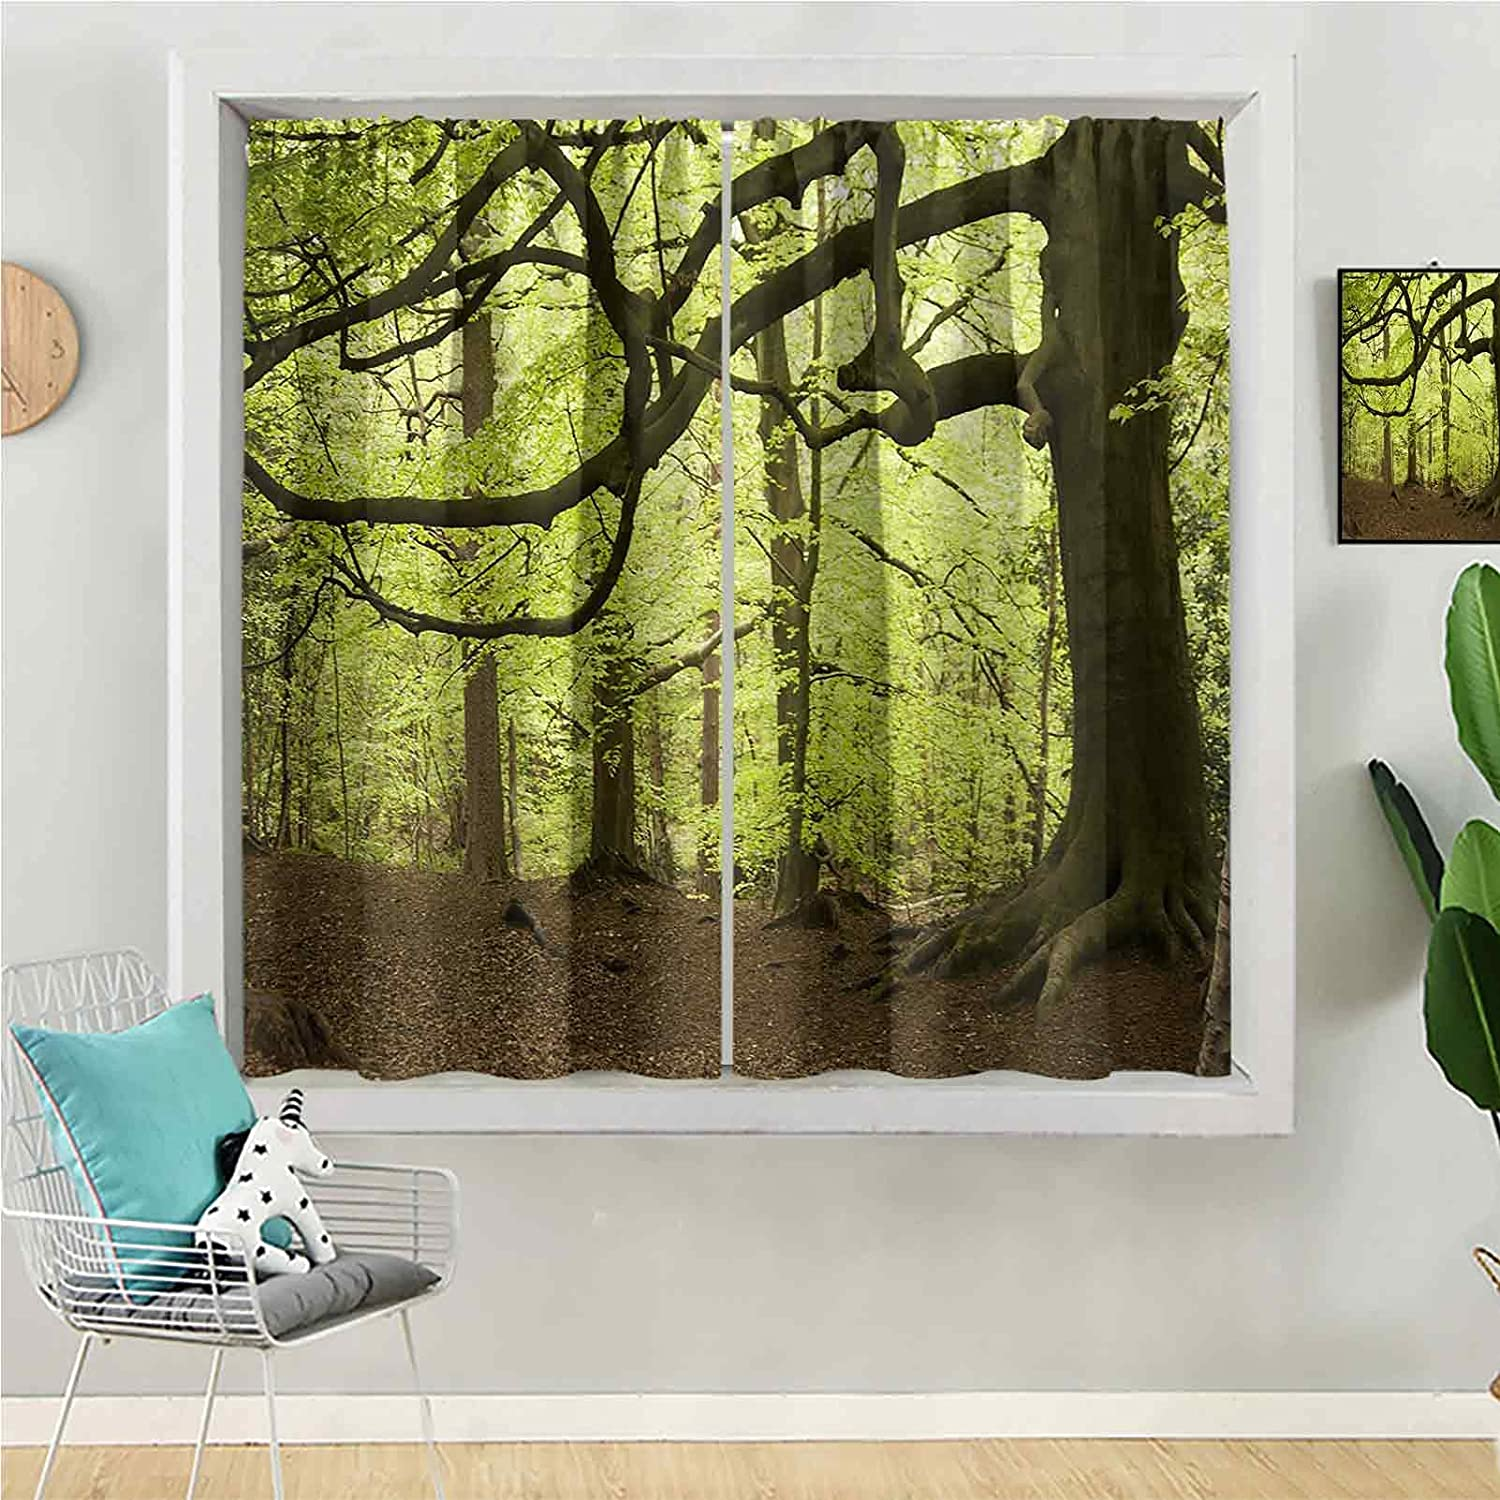 Blackout Curtain 84 wholesale inches Omaha Mall Long Kids Window for Panel Be